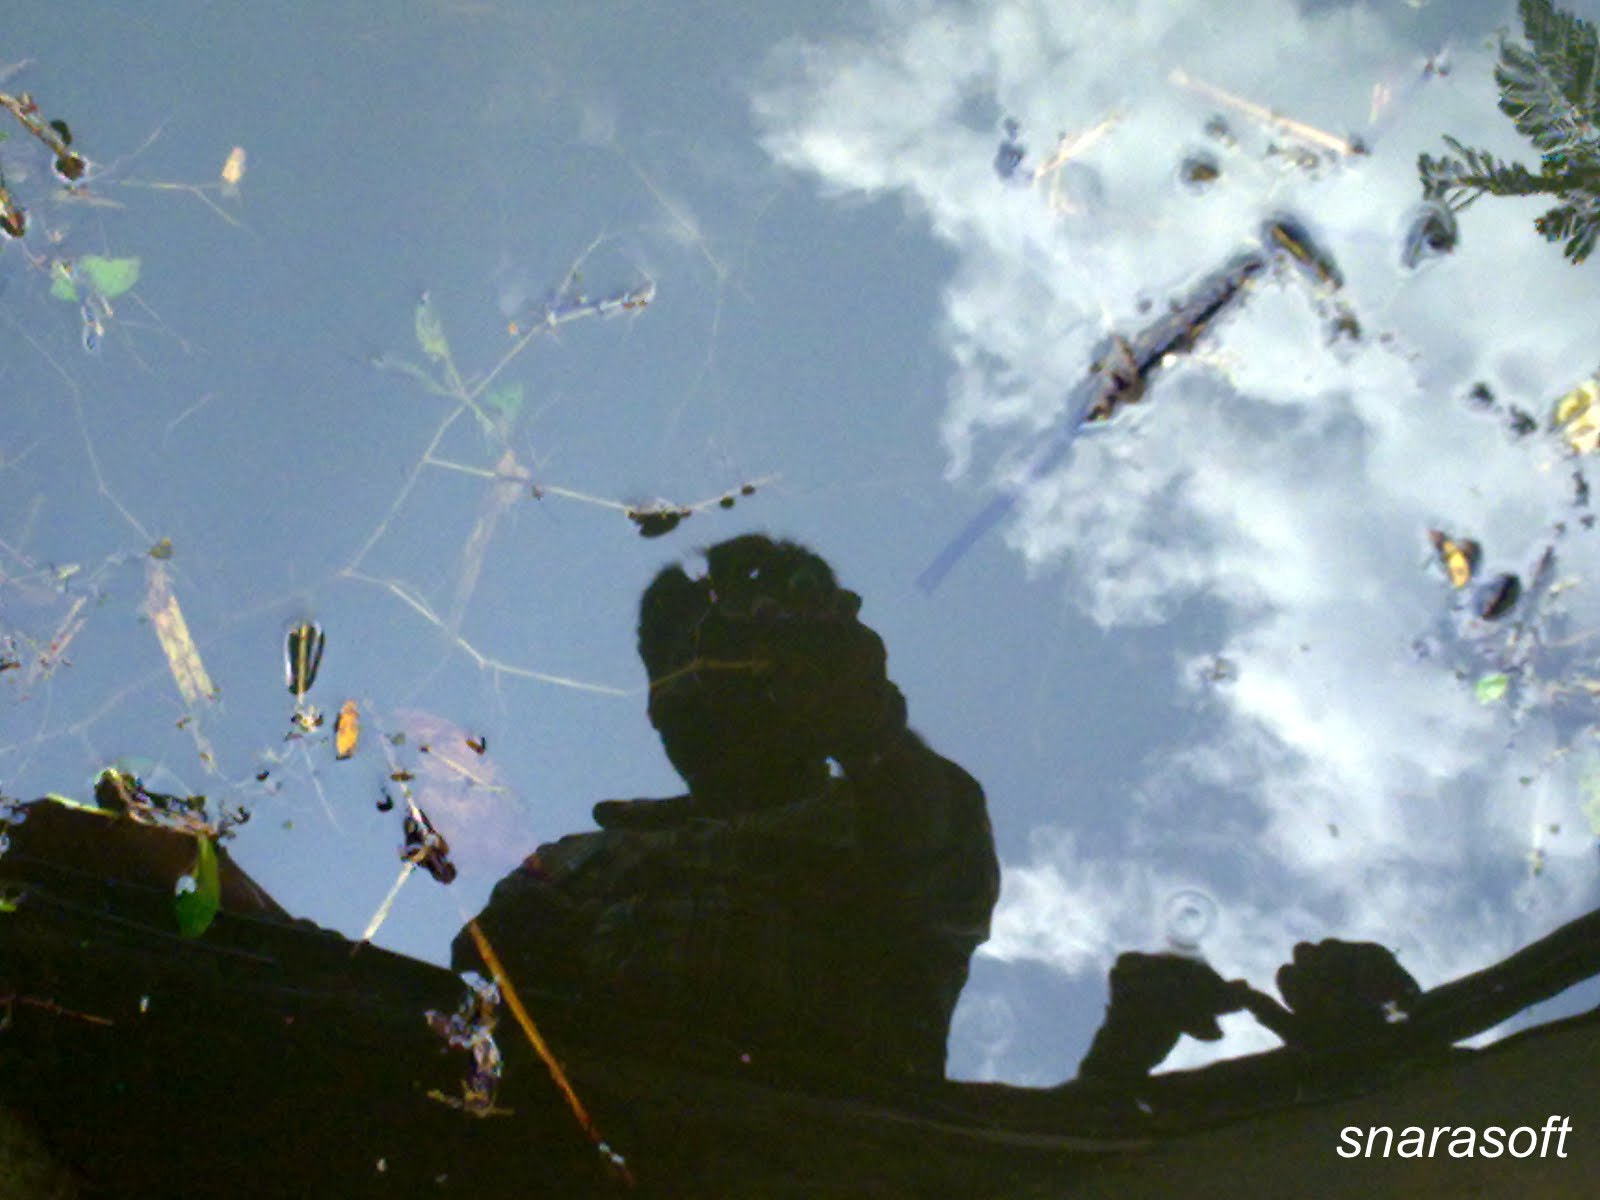 Photograph Own Reflection by Sathya Narayana on 500px